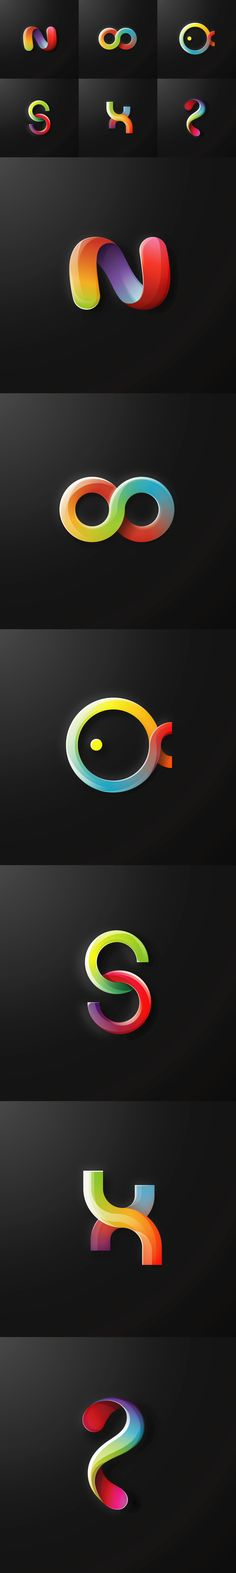 """Collection of 6 free gradient logo that made with a high level of graphic standards. File size is 300 MB in .ai cs6 vector format. So enjoy guys free stuff and don't forget to appreciate and share this piece of art with other.Instructions how to downloa…  Check out my new giveaway @Behance: """"Free logo pack"""" http://be.net/gallery/47337183/Free-logo-pack  #giveaway #free #logo #design #art #vector #illustration #logos #illustrator #download #behance #freebee"""